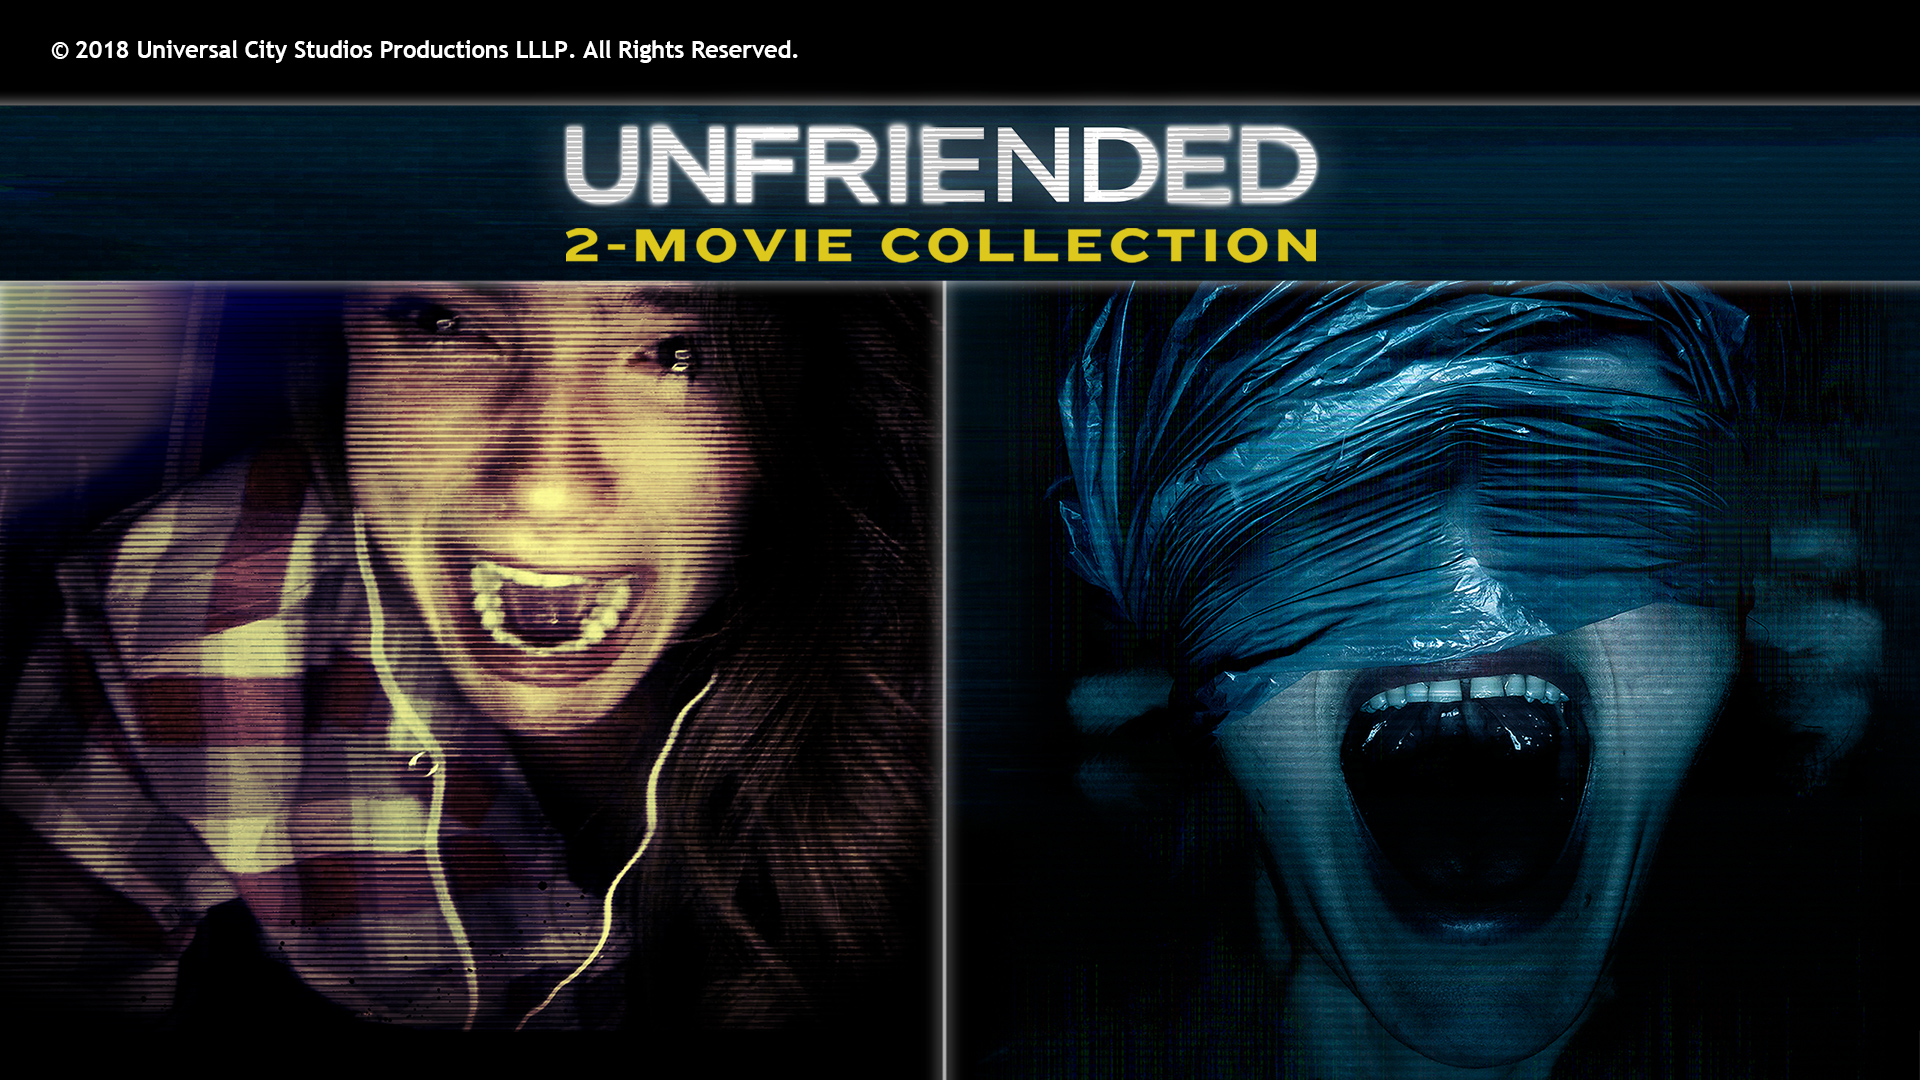 UNFRIENDED 2-MOVIE COLLECTION